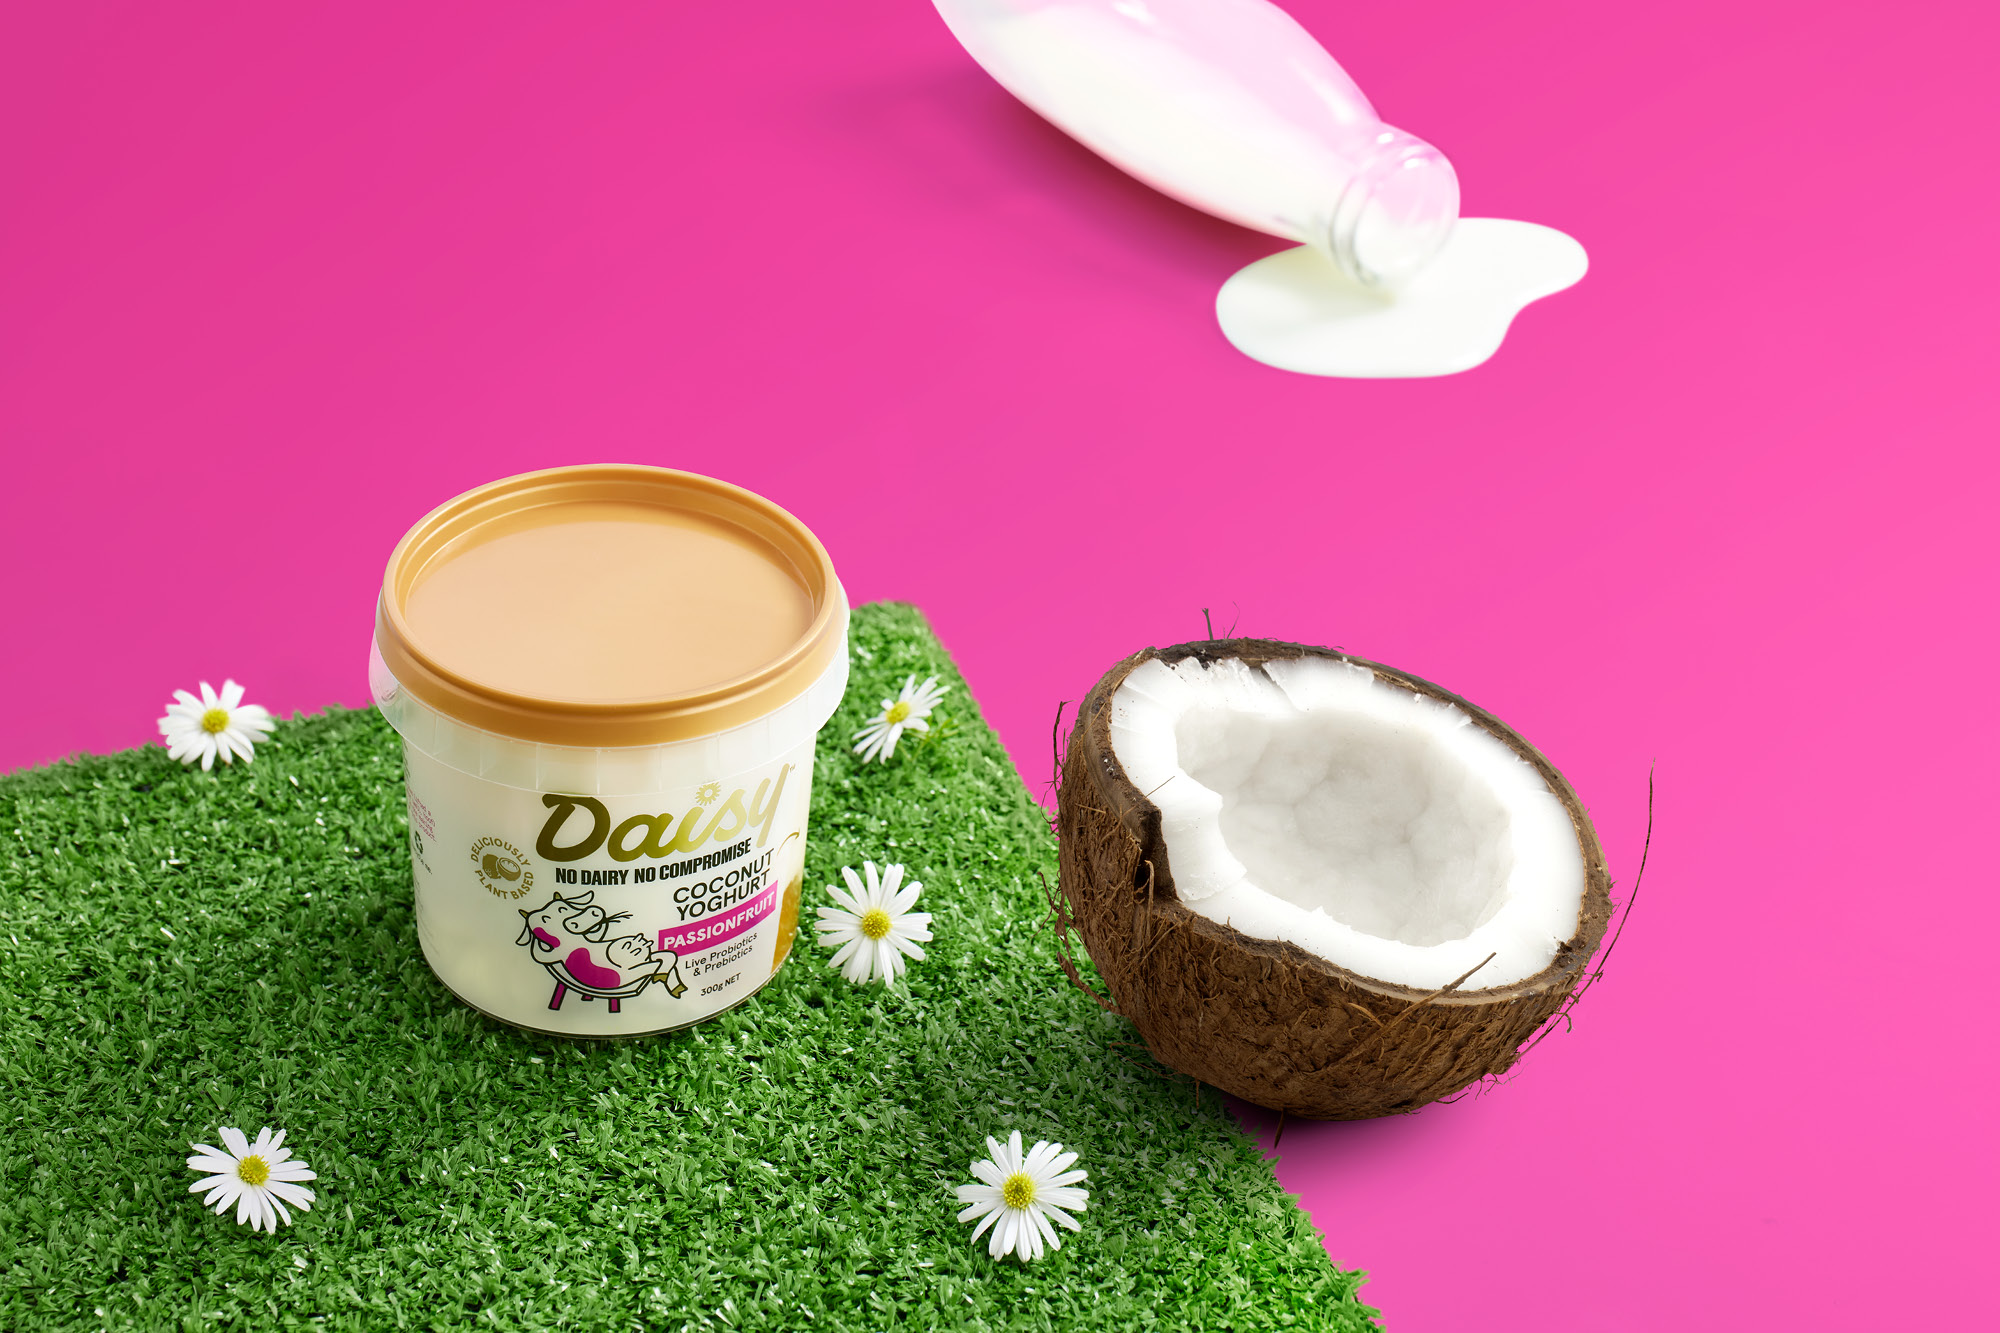 Delicious Plant-Based Yoghurt Range – Its Daisy Not Dairy